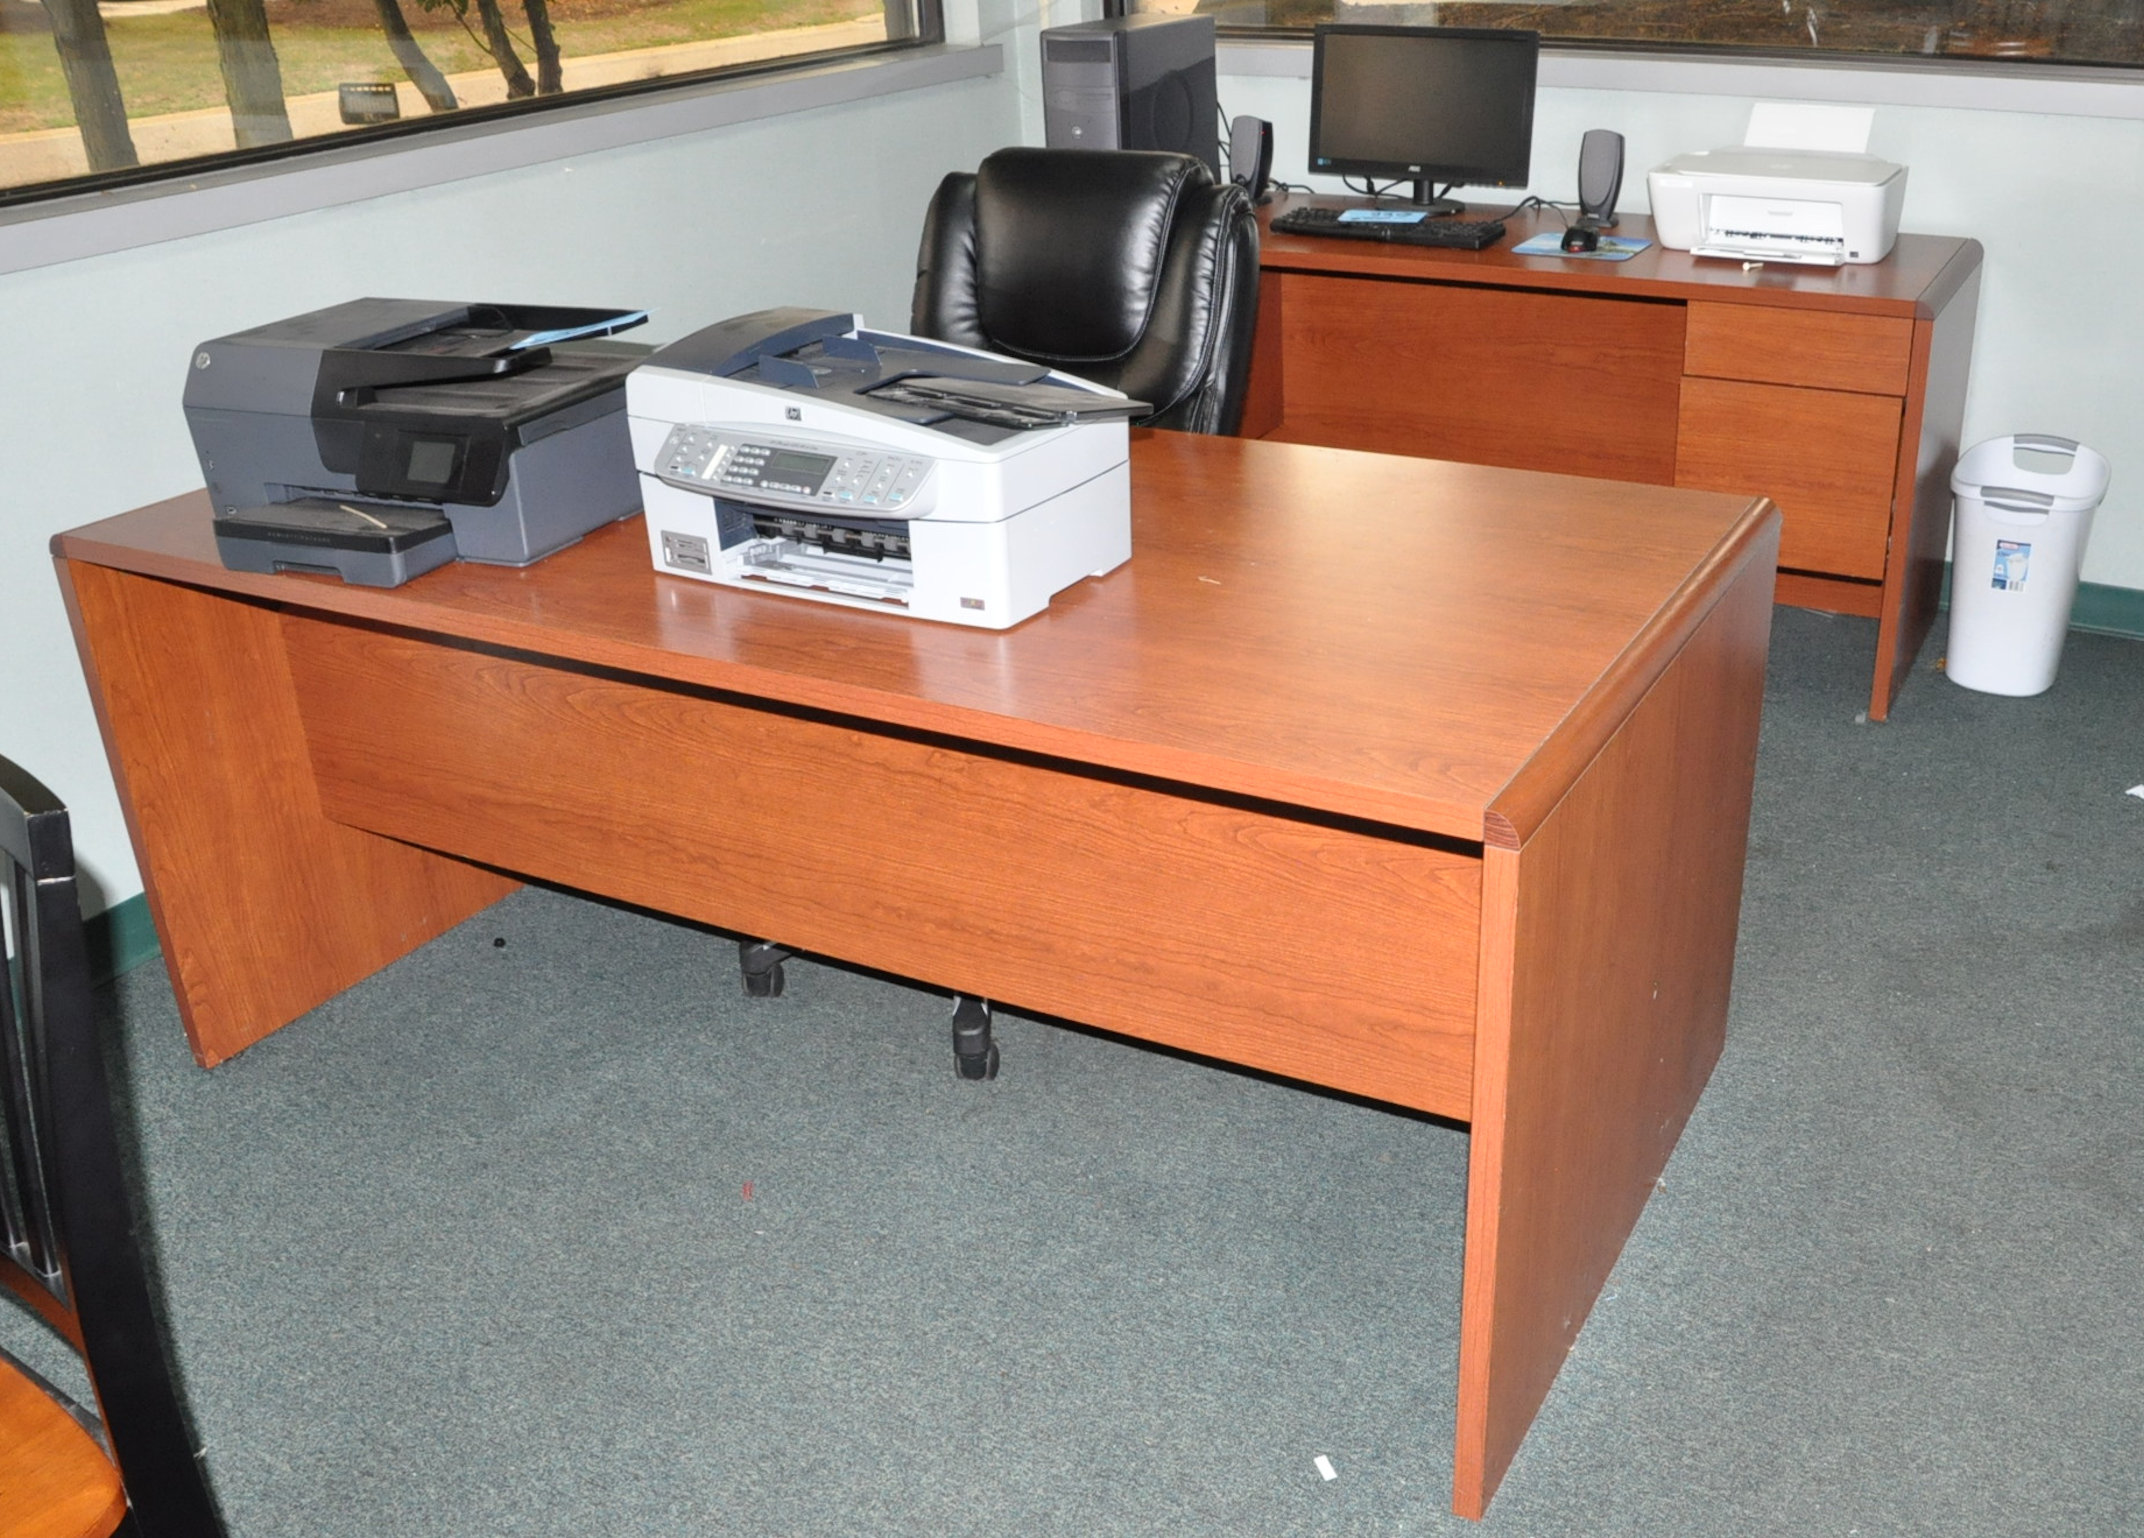 Lot-(2) Desks, Table, (5) Chairs, Pedestal Stand, Dry Erase Board and (2) Wall Prints (No contents)